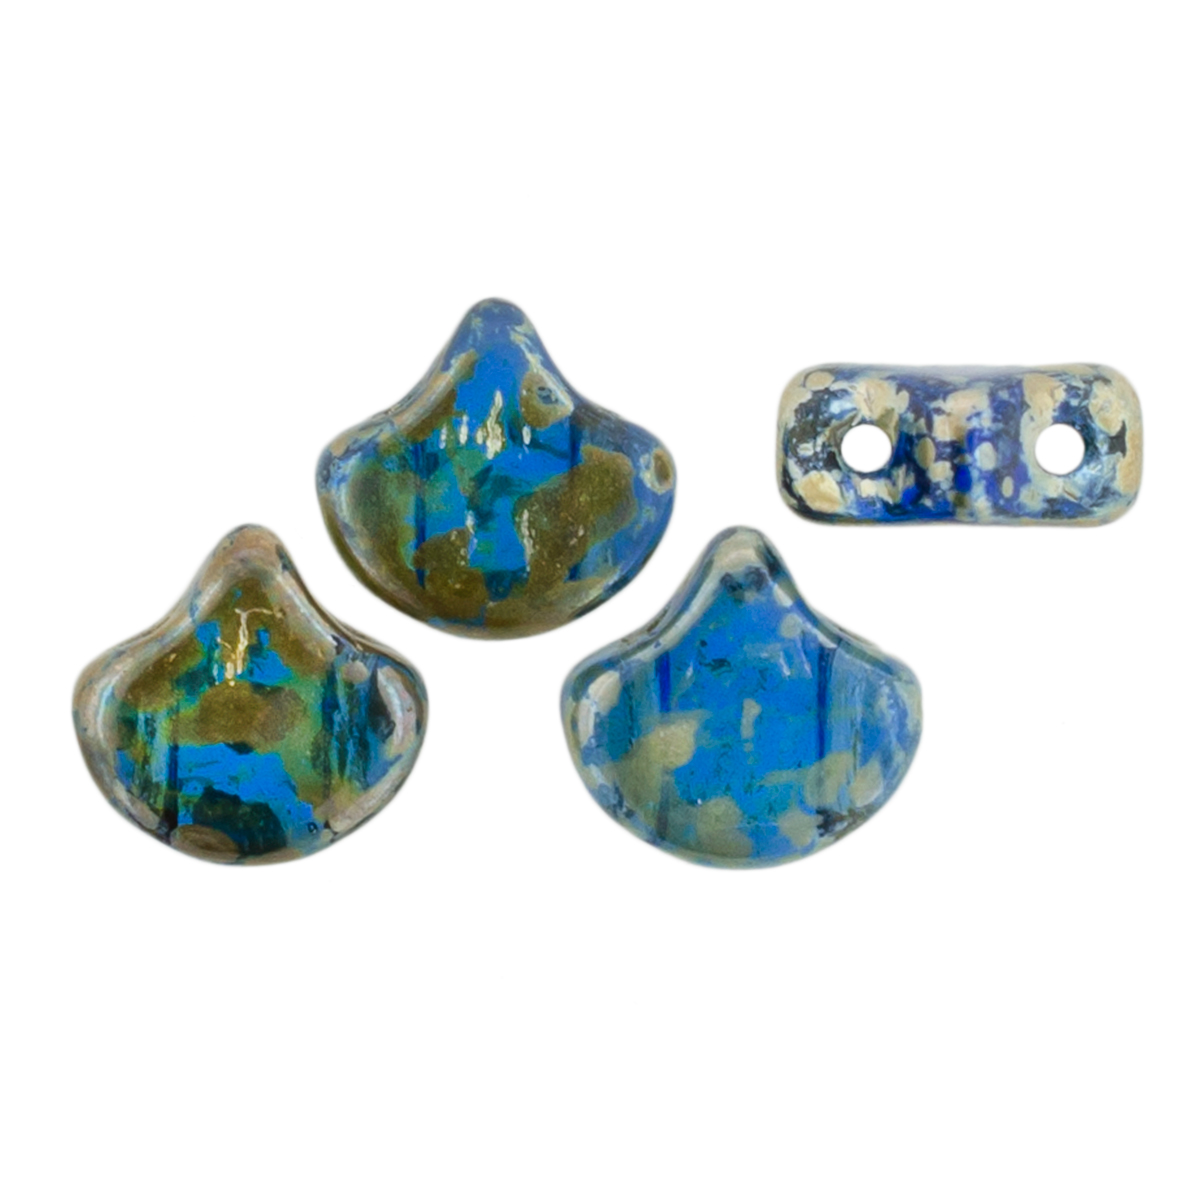 Matubo Ginkgo Leaf Bead 7.5x7.5mm (loose) : Sapphire - Rembrandt